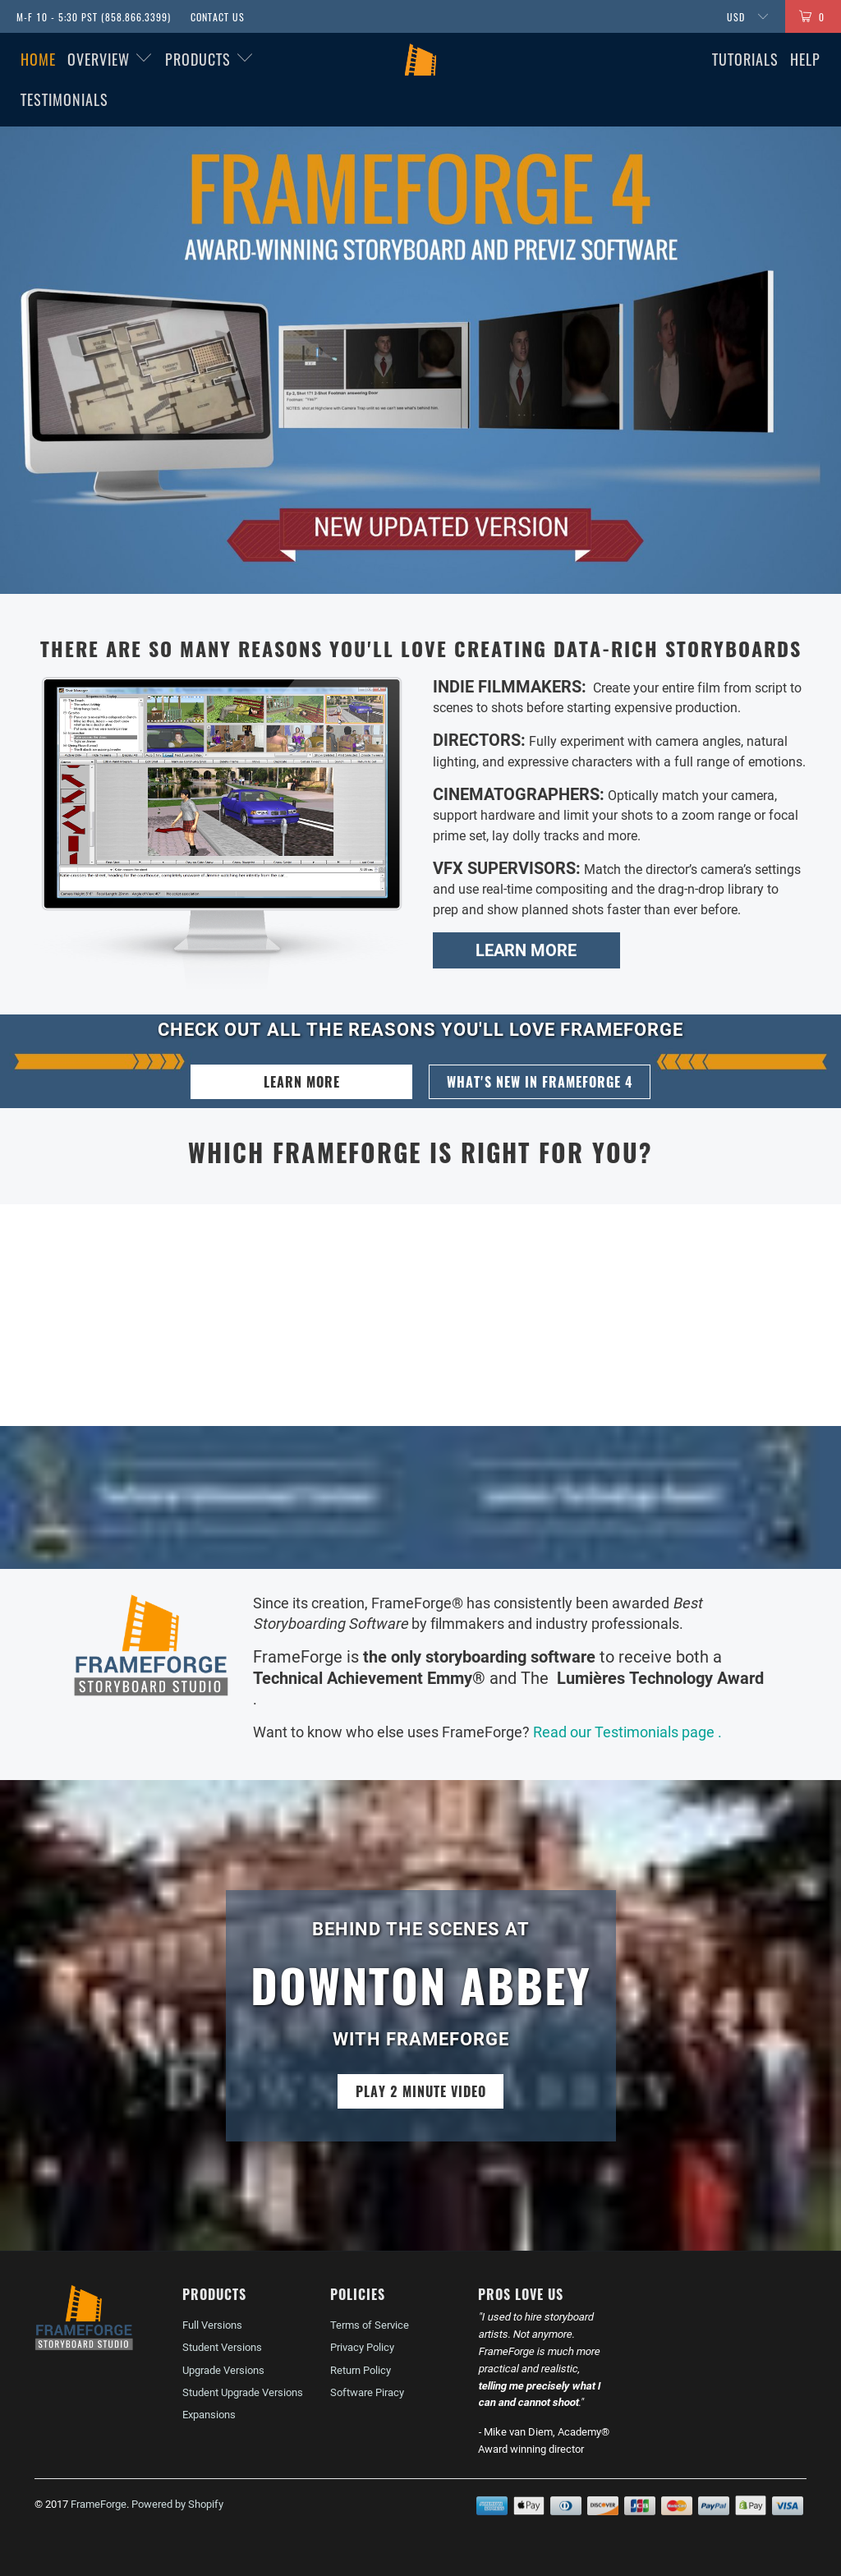 Frameforge 3d Studio Competitors, Revenue and Employees - Owler ...